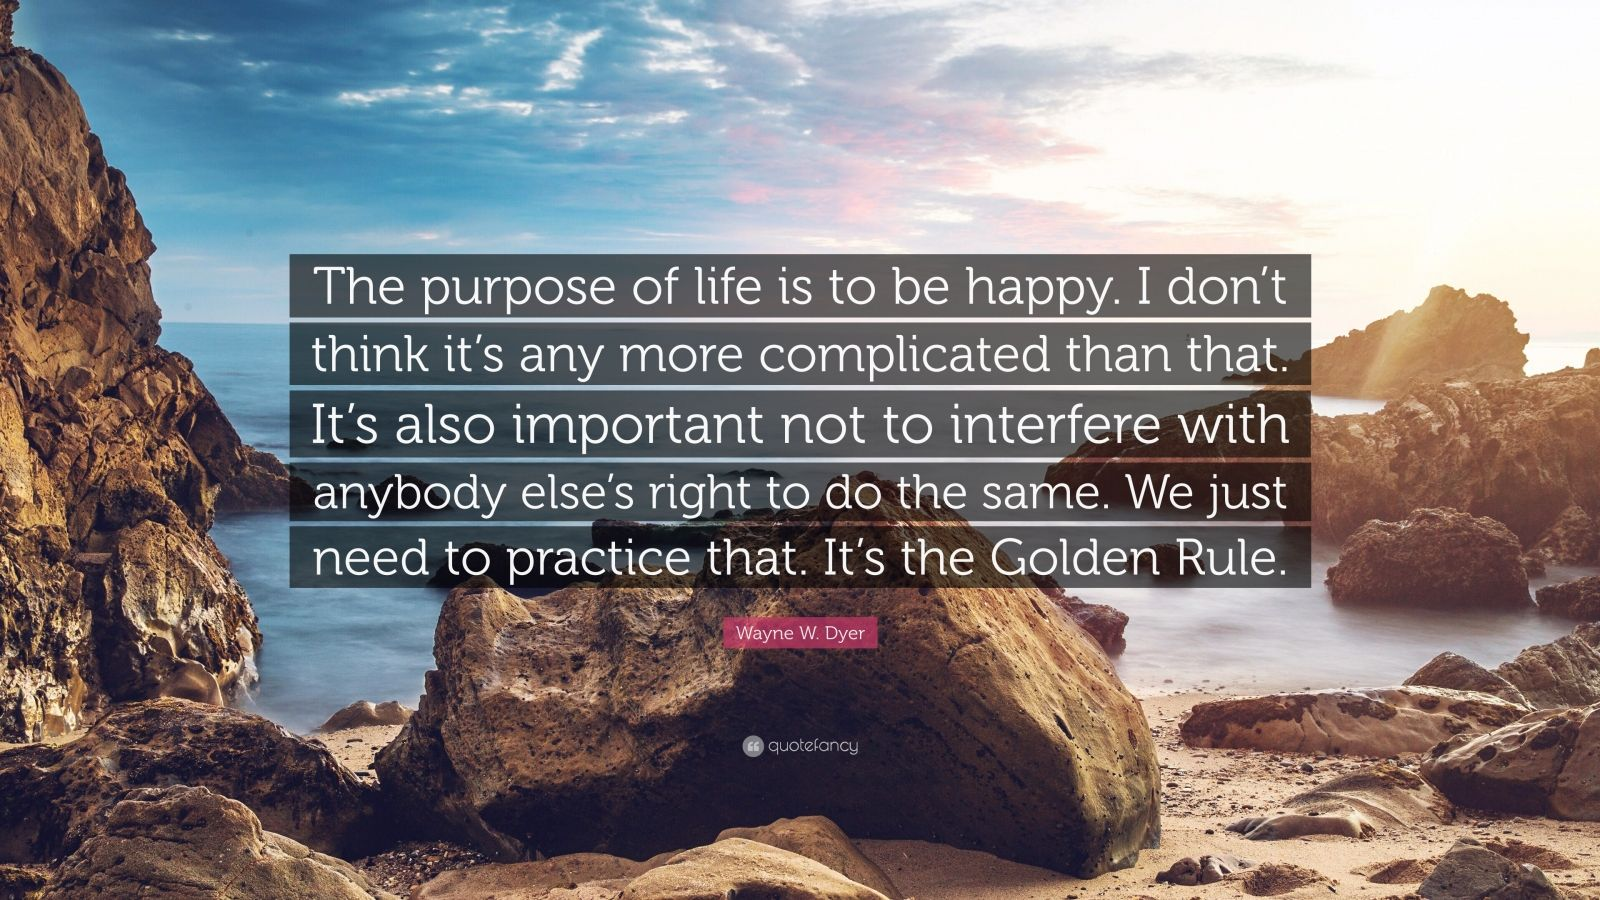 """Wayne W. Dyer Quote: """"The purpose of life is to be happy. I don't think it's any more complicated than that. It's also important not to interfere with anybody else's right to do the same. We just need to practice that. It's the Golden Rule."""""""